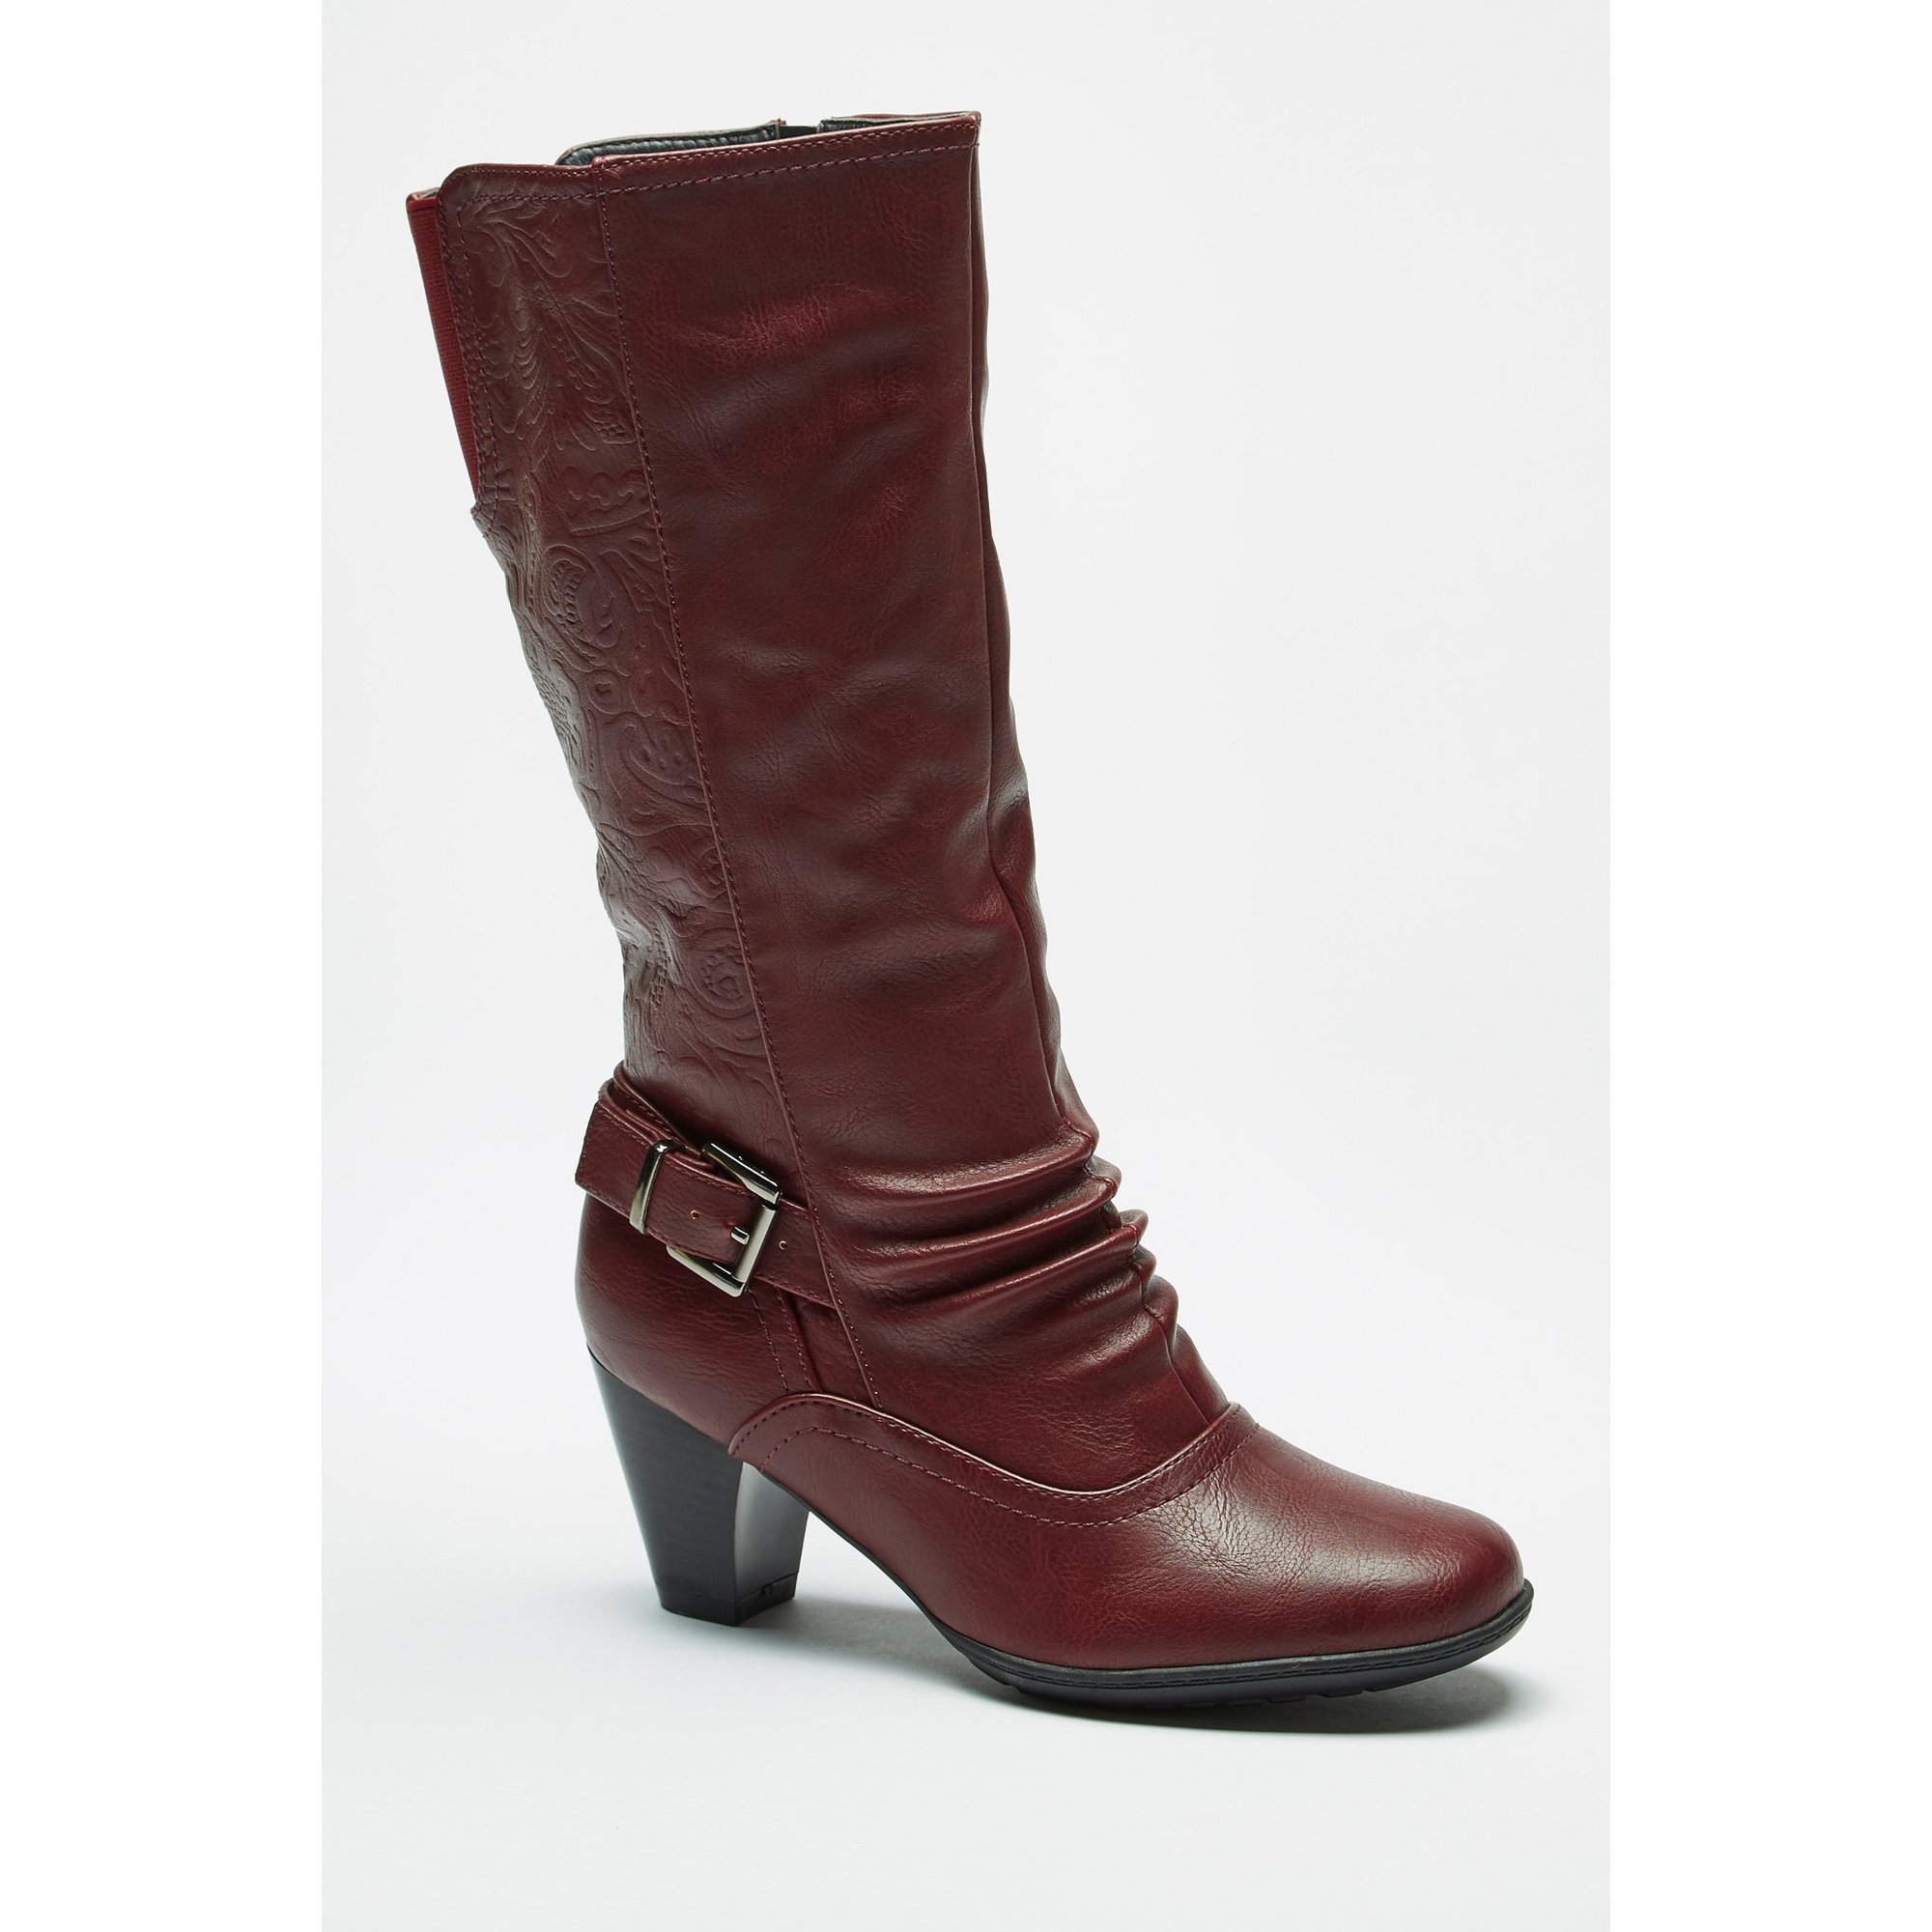 Image of Cushion Walk Embossed Floral Tall Cone Heel Burgundy Boots